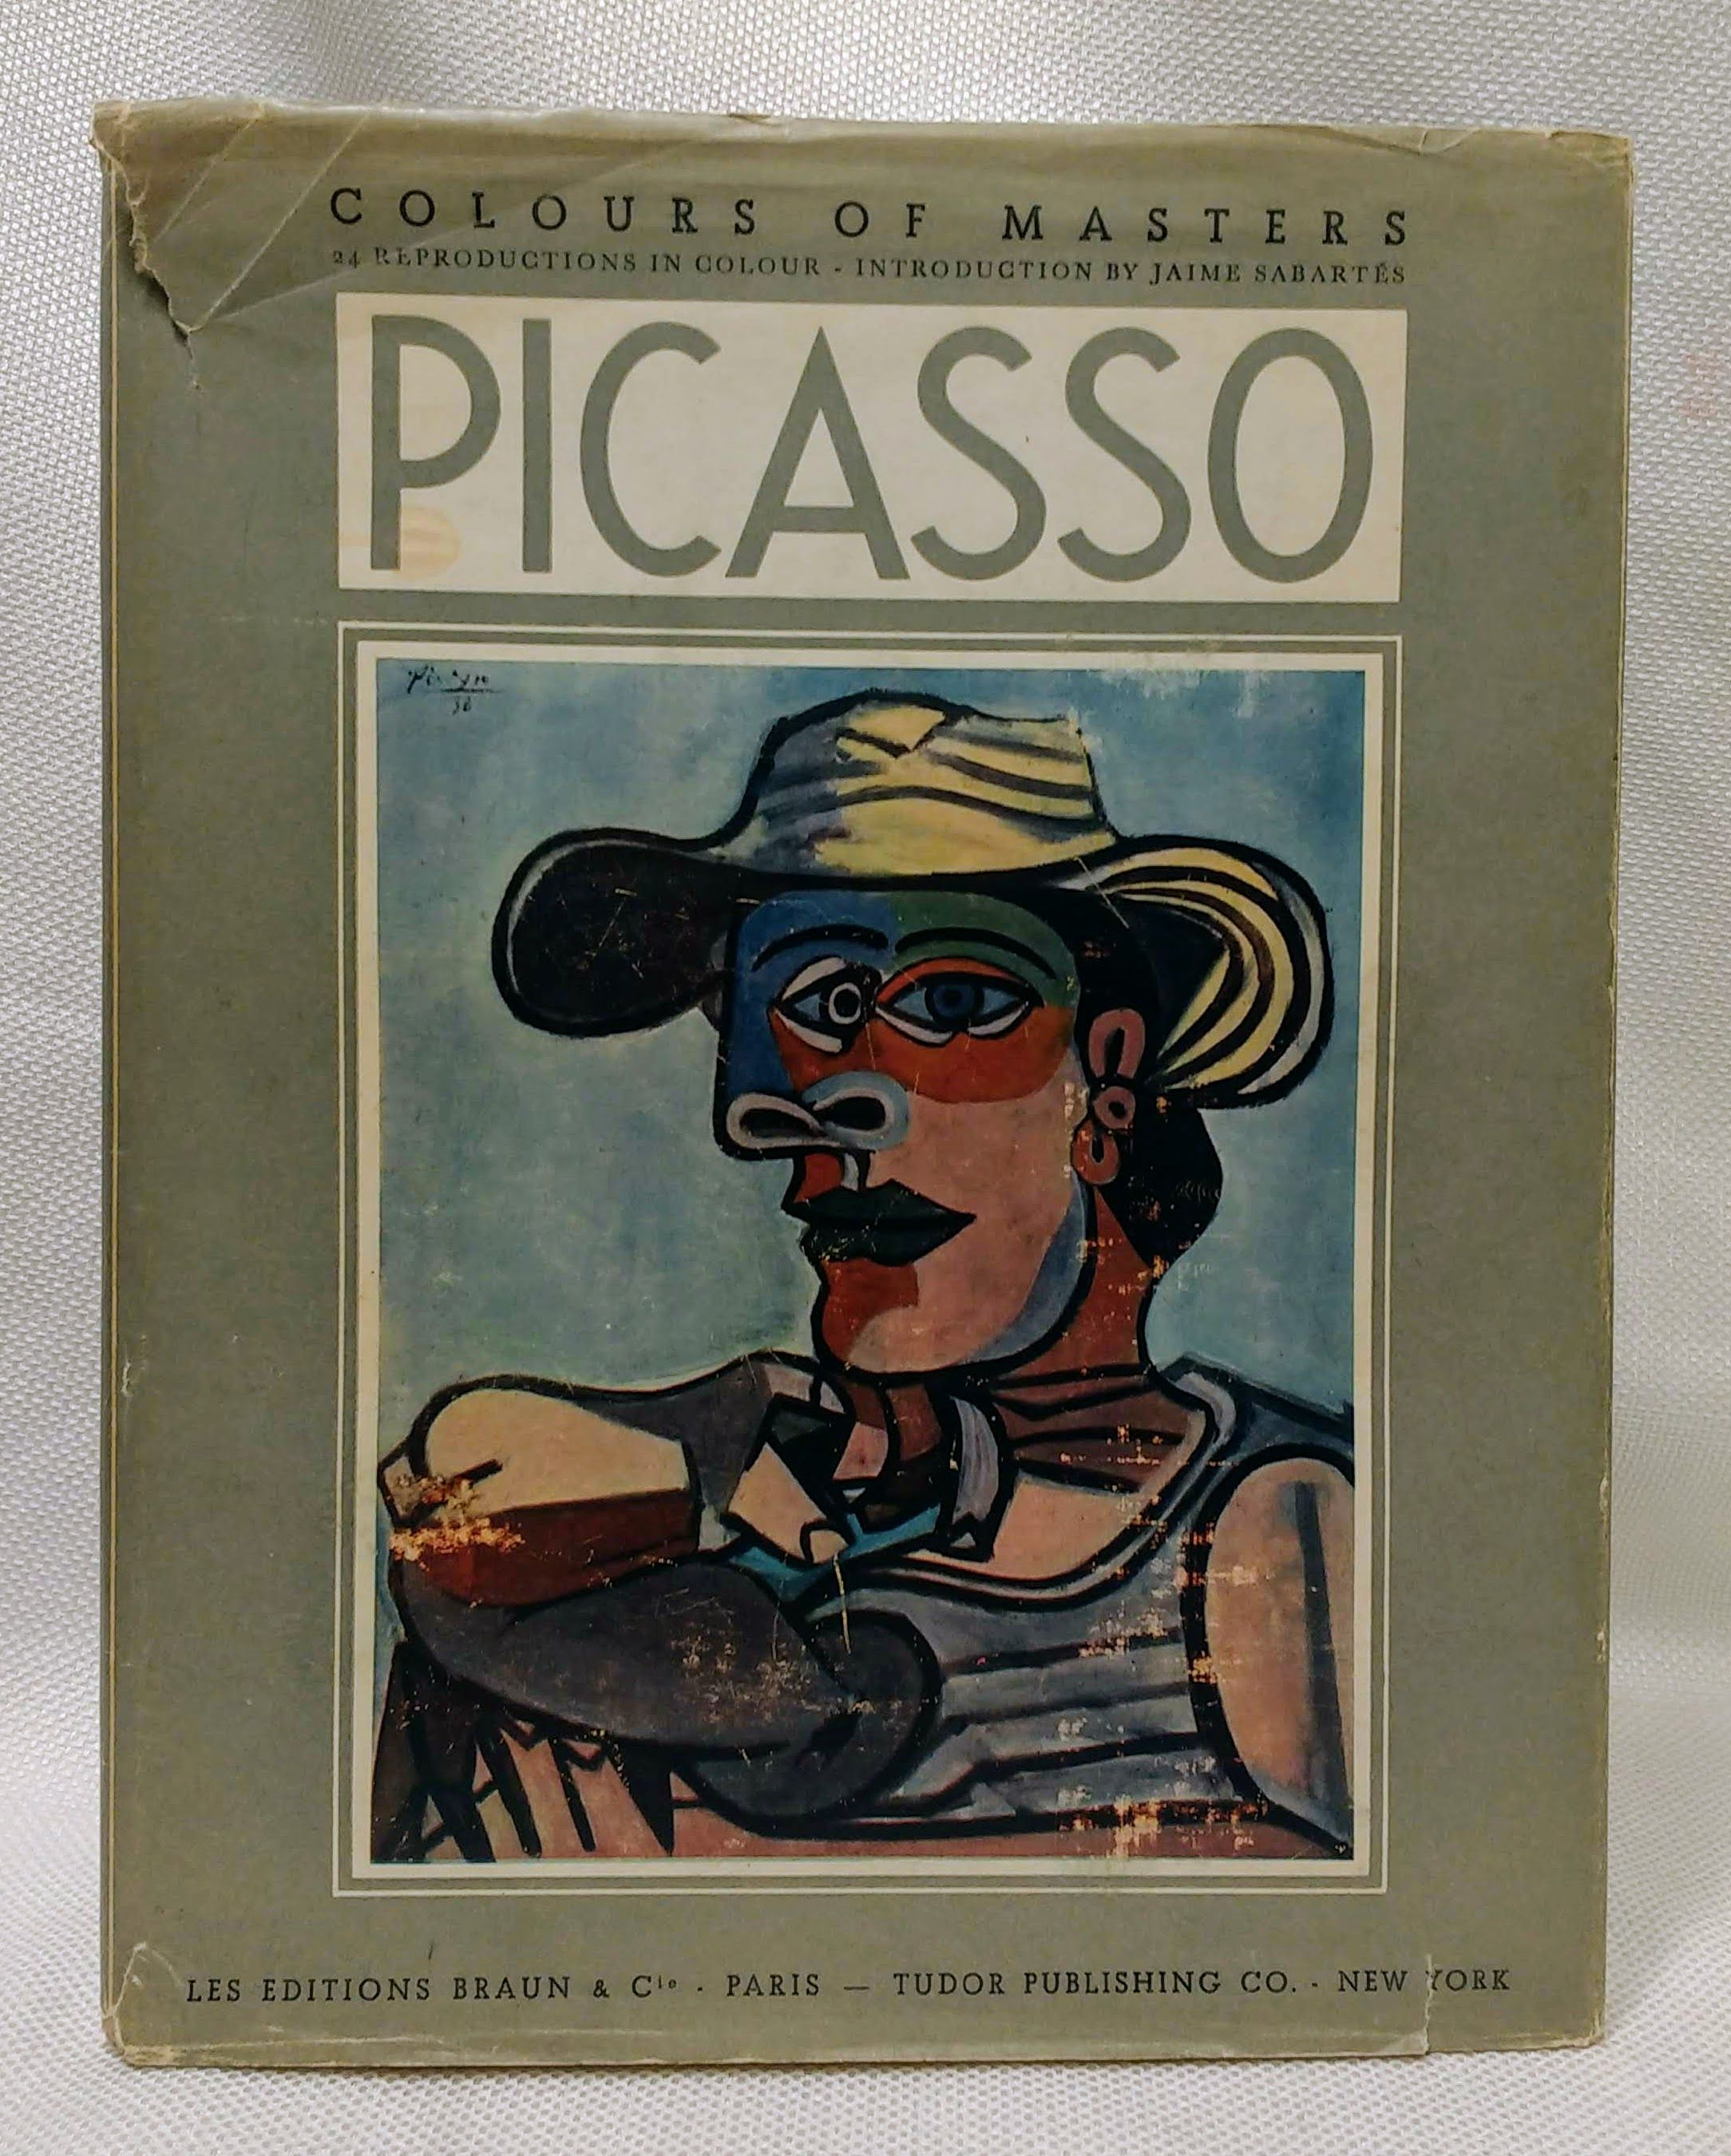 Paintings and Drawings of Picasso With a Critical Survey by Jaime Sabartes, Picasso, Pablo; Sabartes, Jaime [introduction]